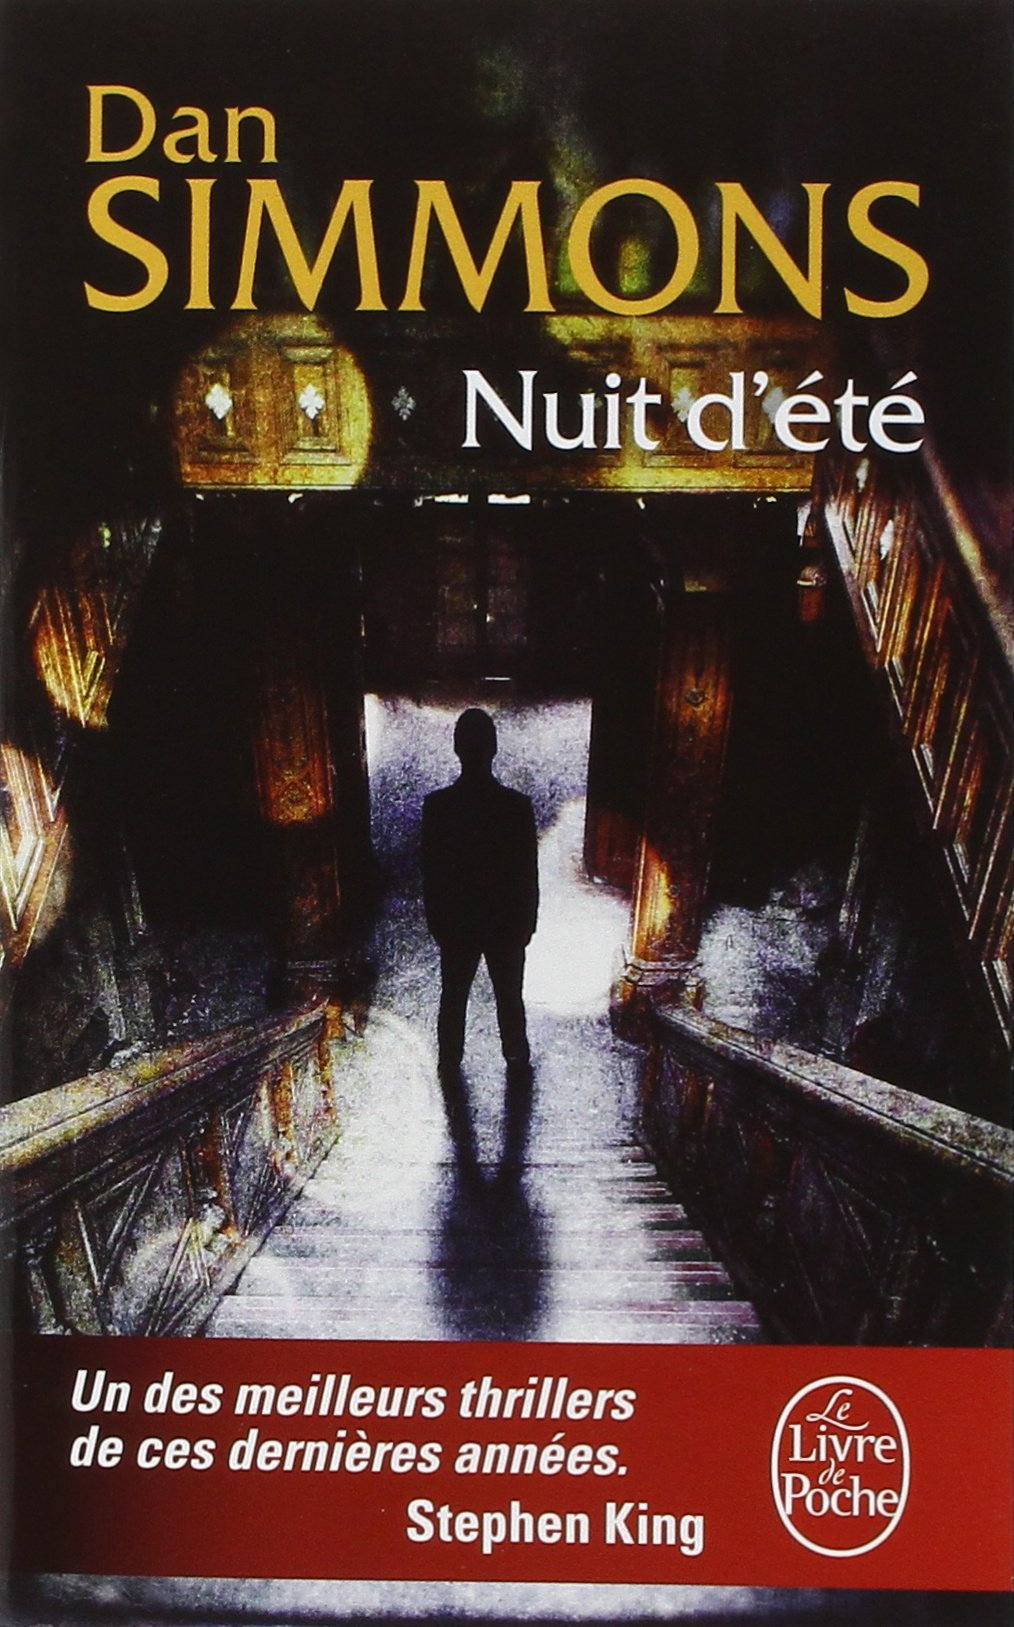 Nuit D'ete by Dan Simmons - book cover photography by Dave wall Photo